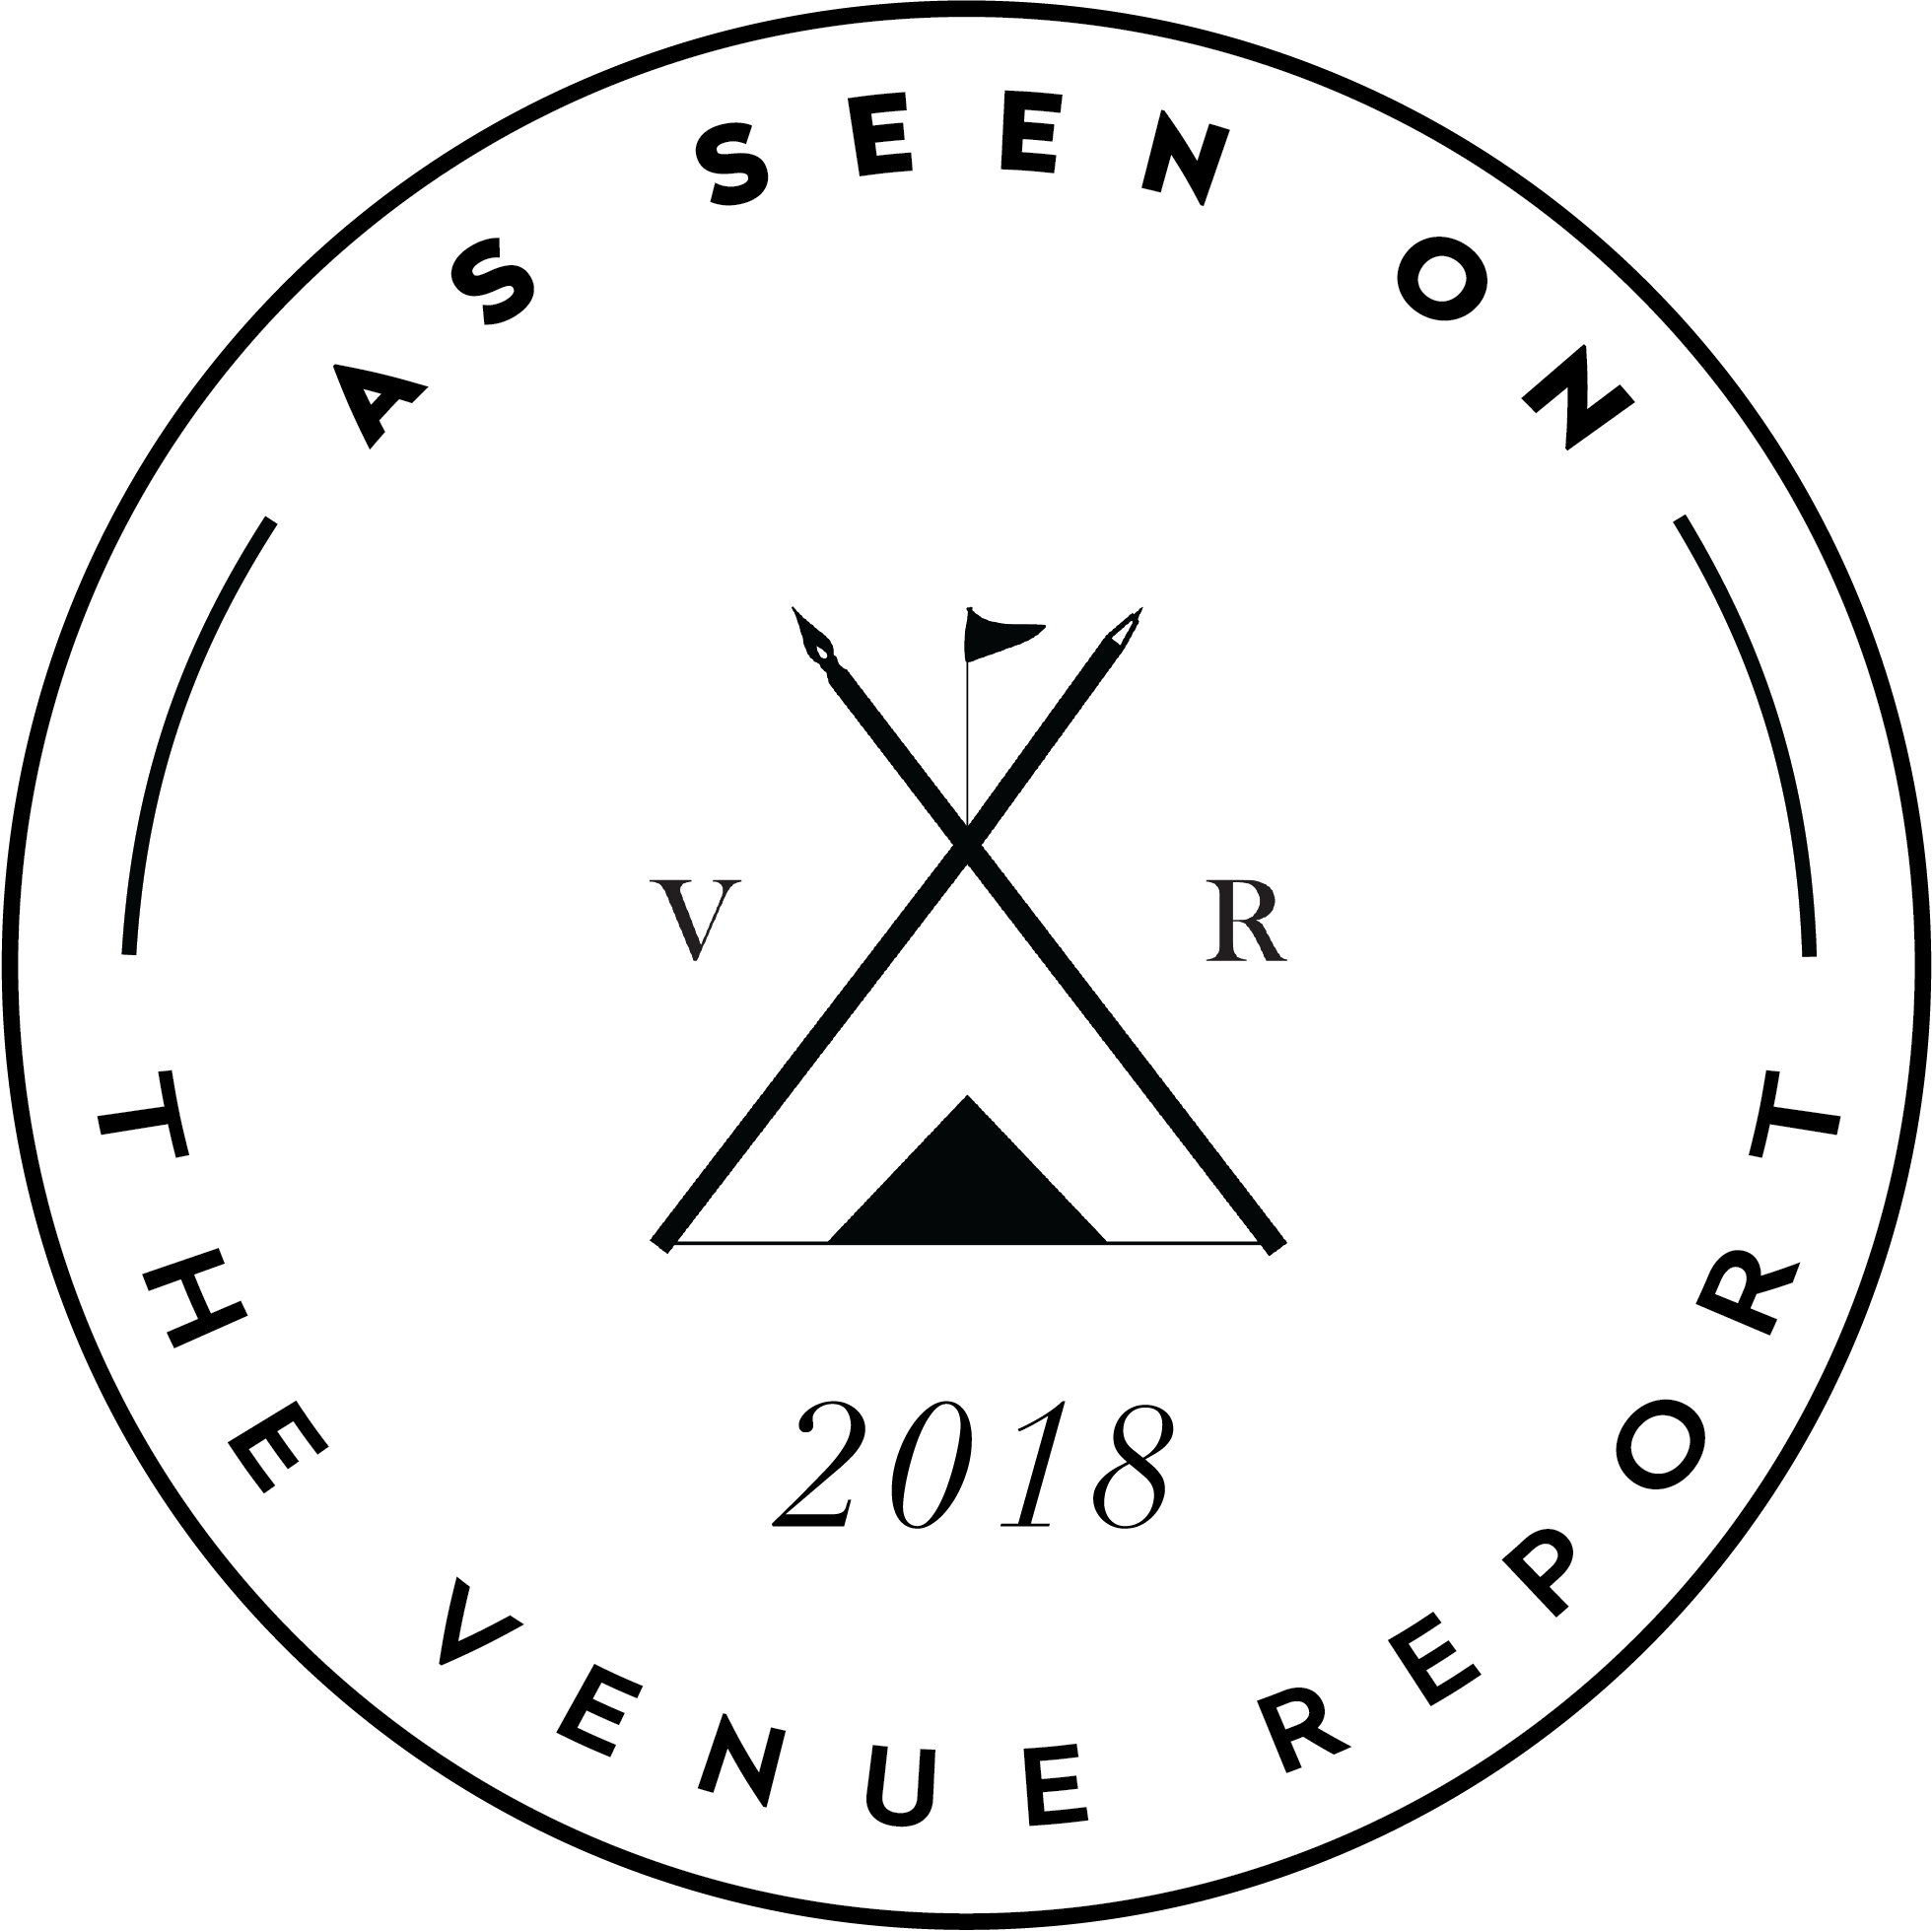 Venue report badge